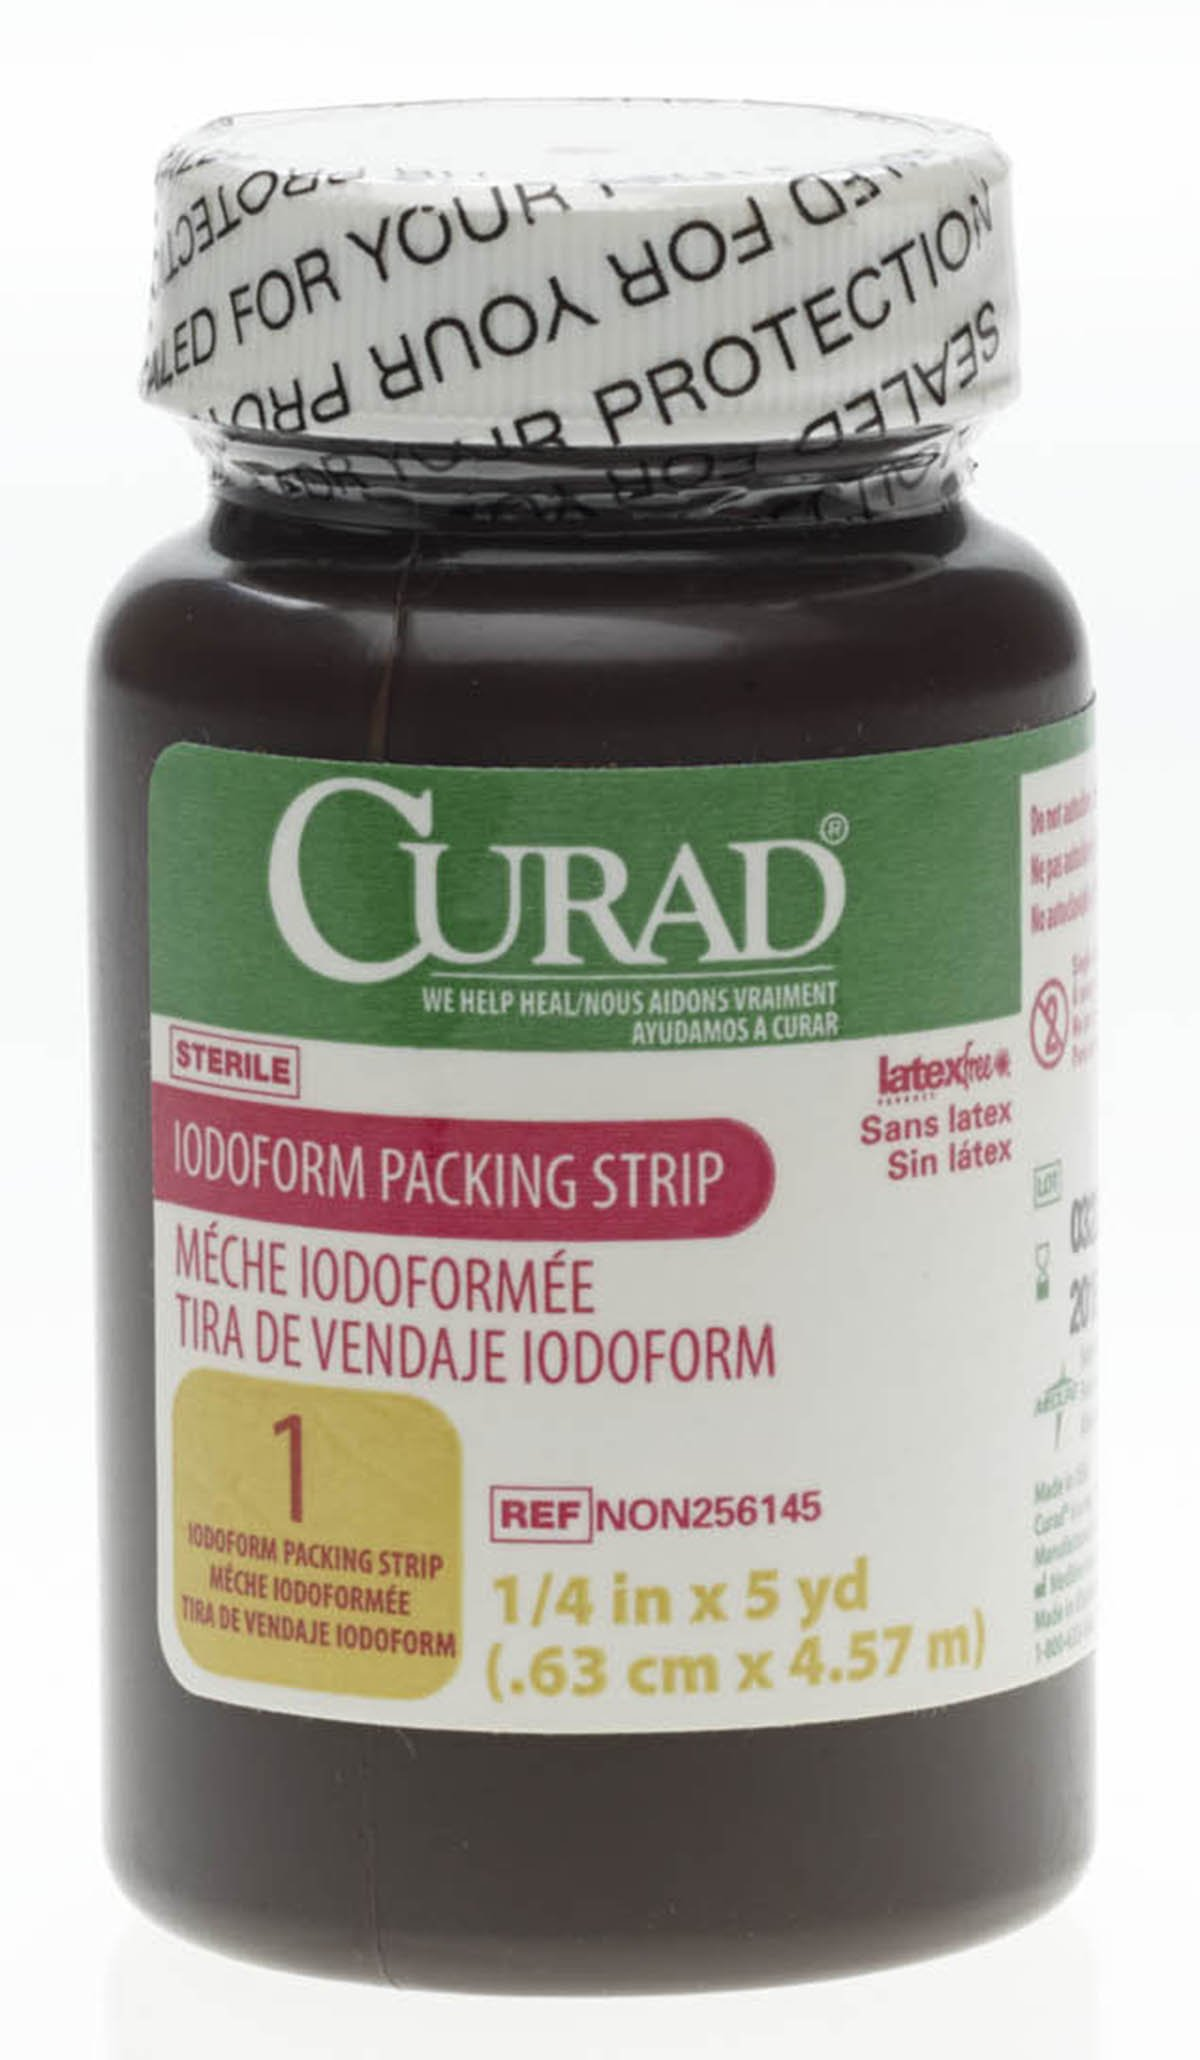 MEDLINE NON256145 NON256145H Curad Sterile Iodoform Packing Strips by Medline